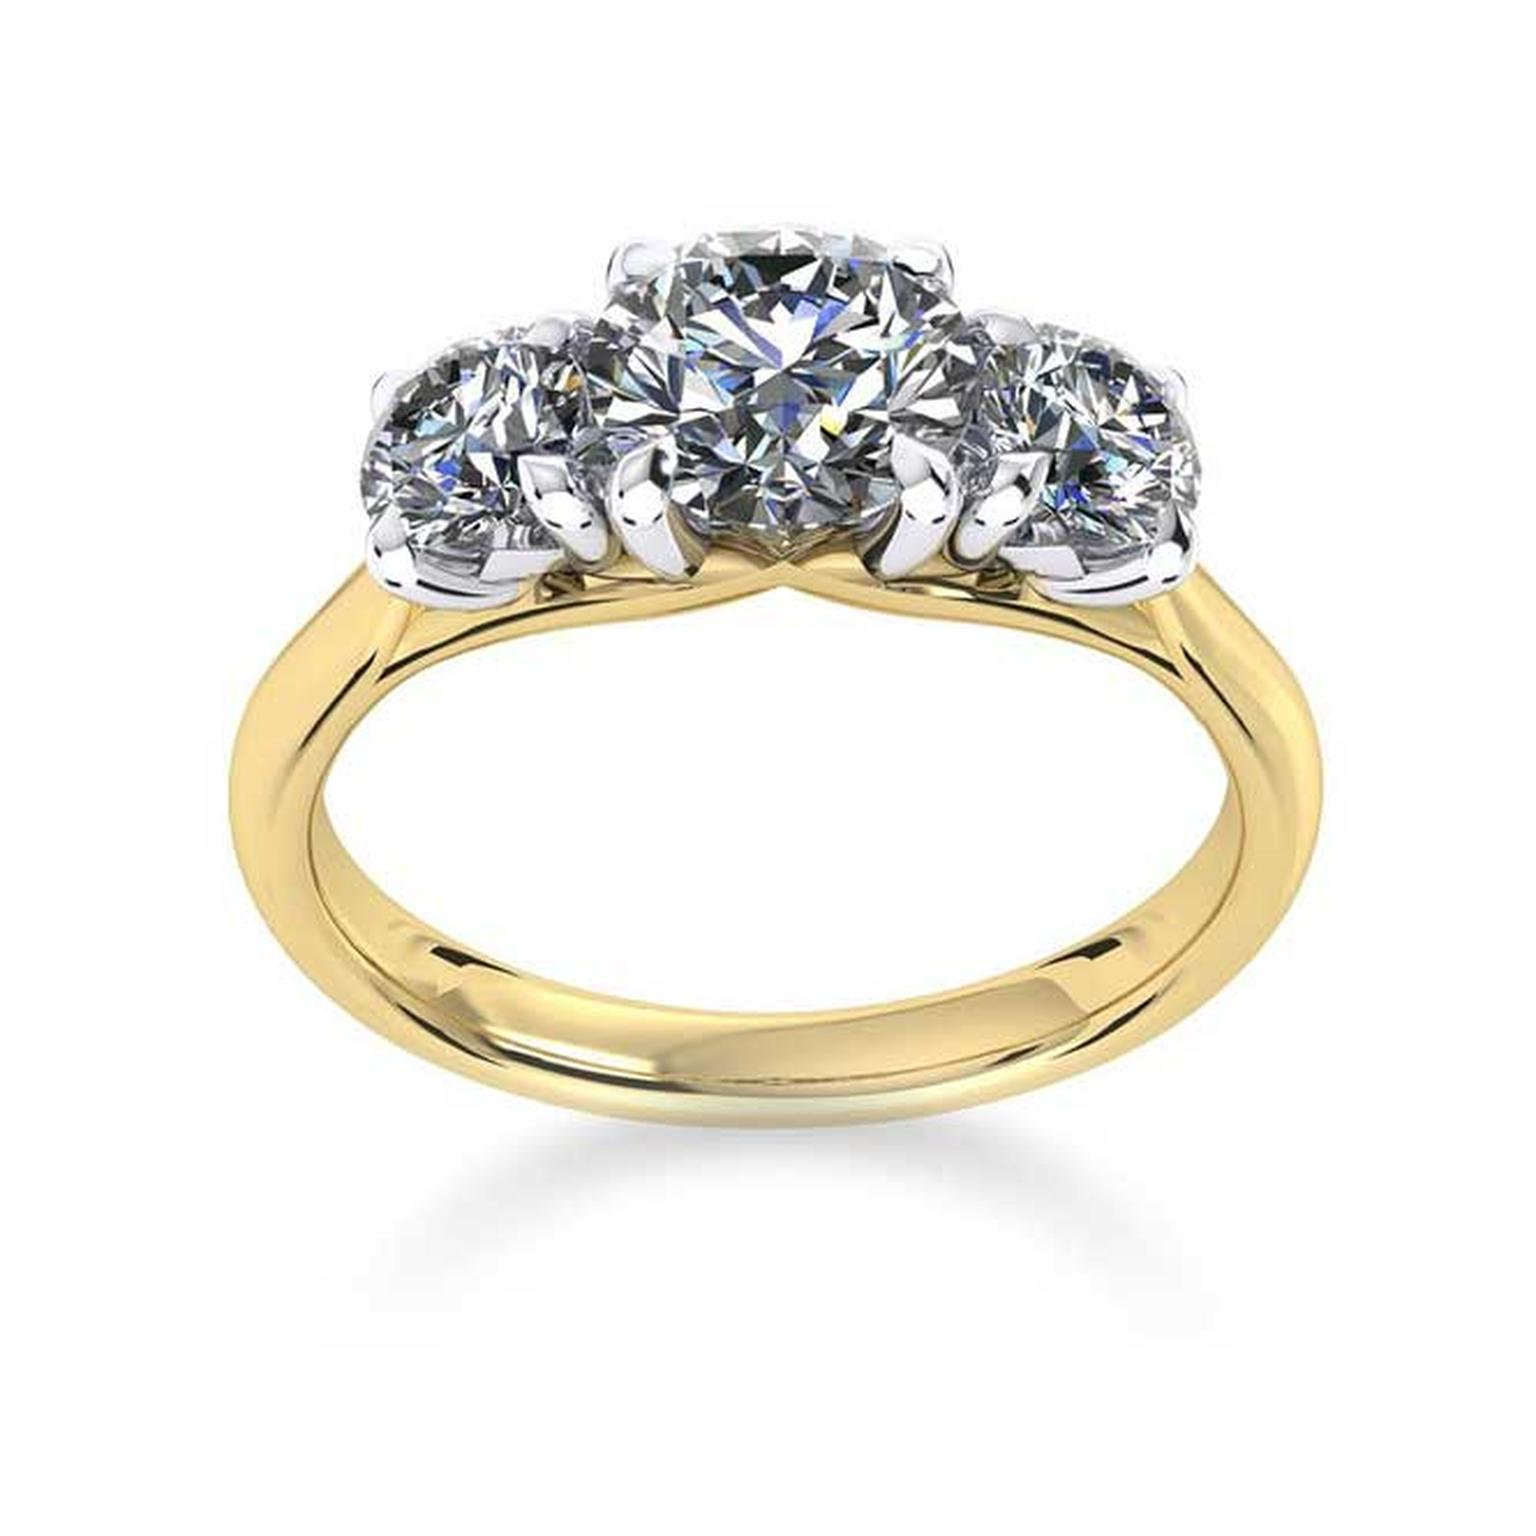 Mappin & Webb Ena Harkness three stone engagement ring